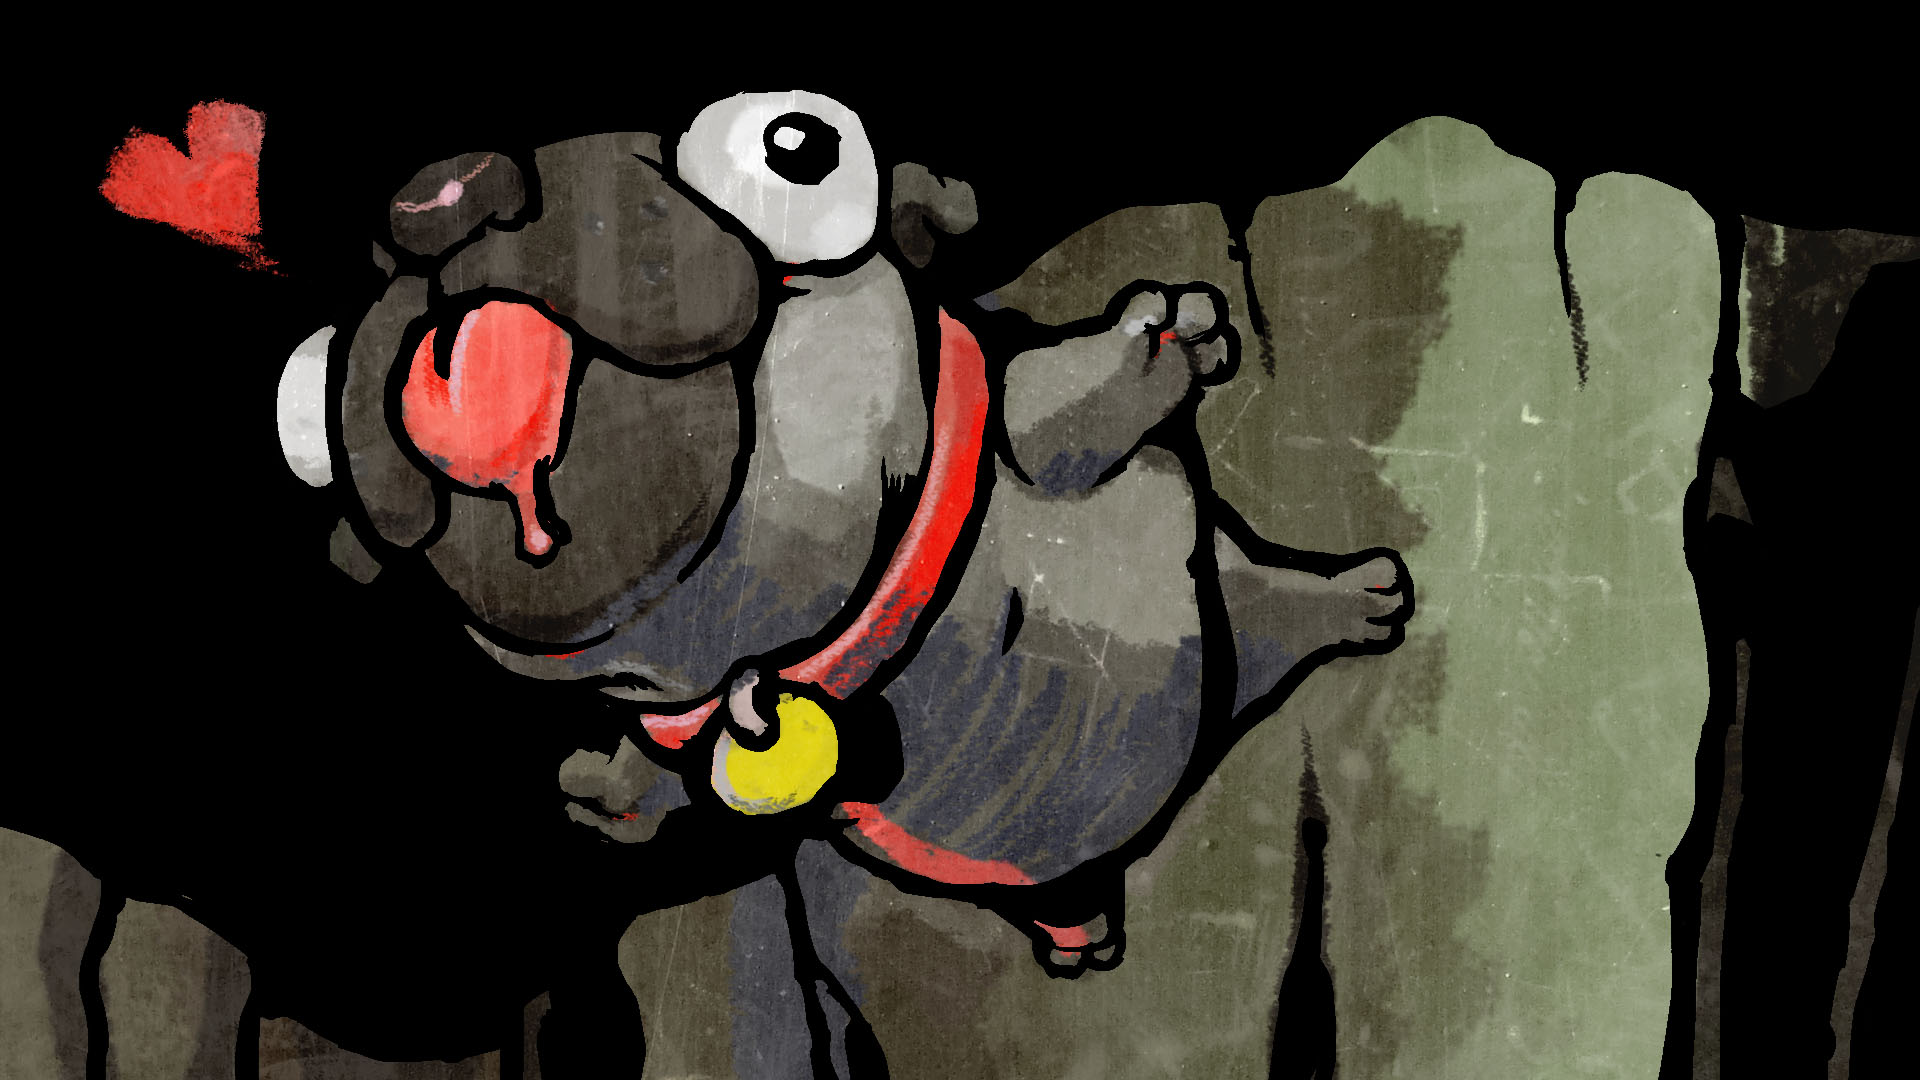 spelunky wallpaper game